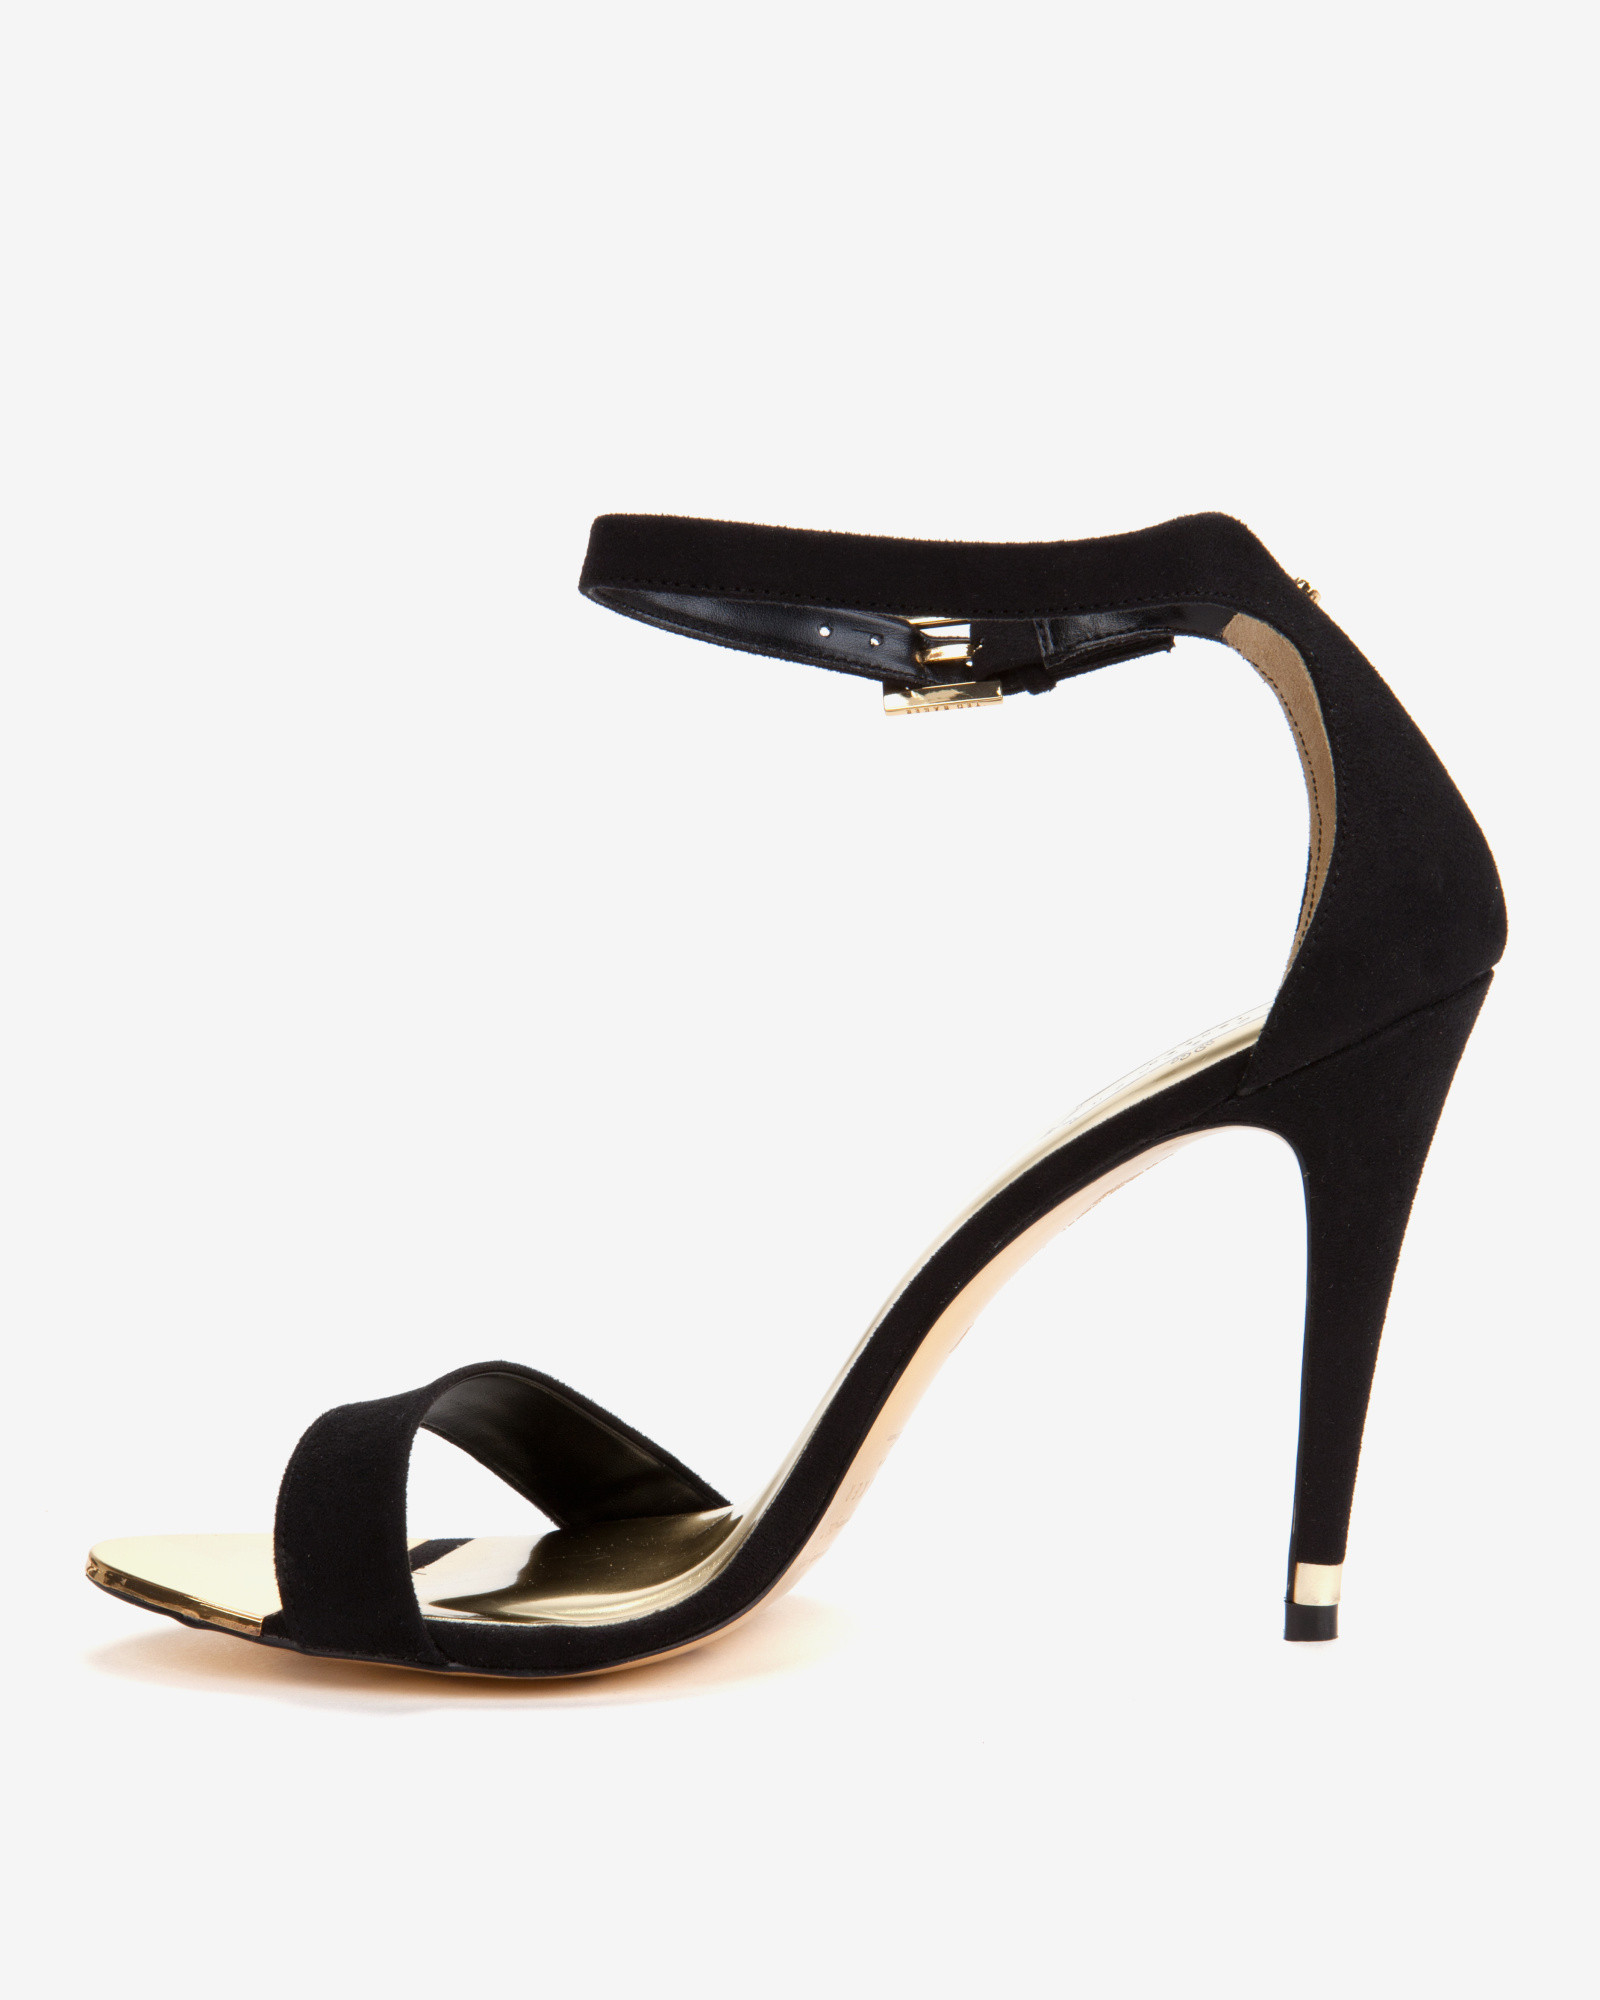 7536bc83c49 Ted Baker Ankle Strap Sandals in Black - Lyst